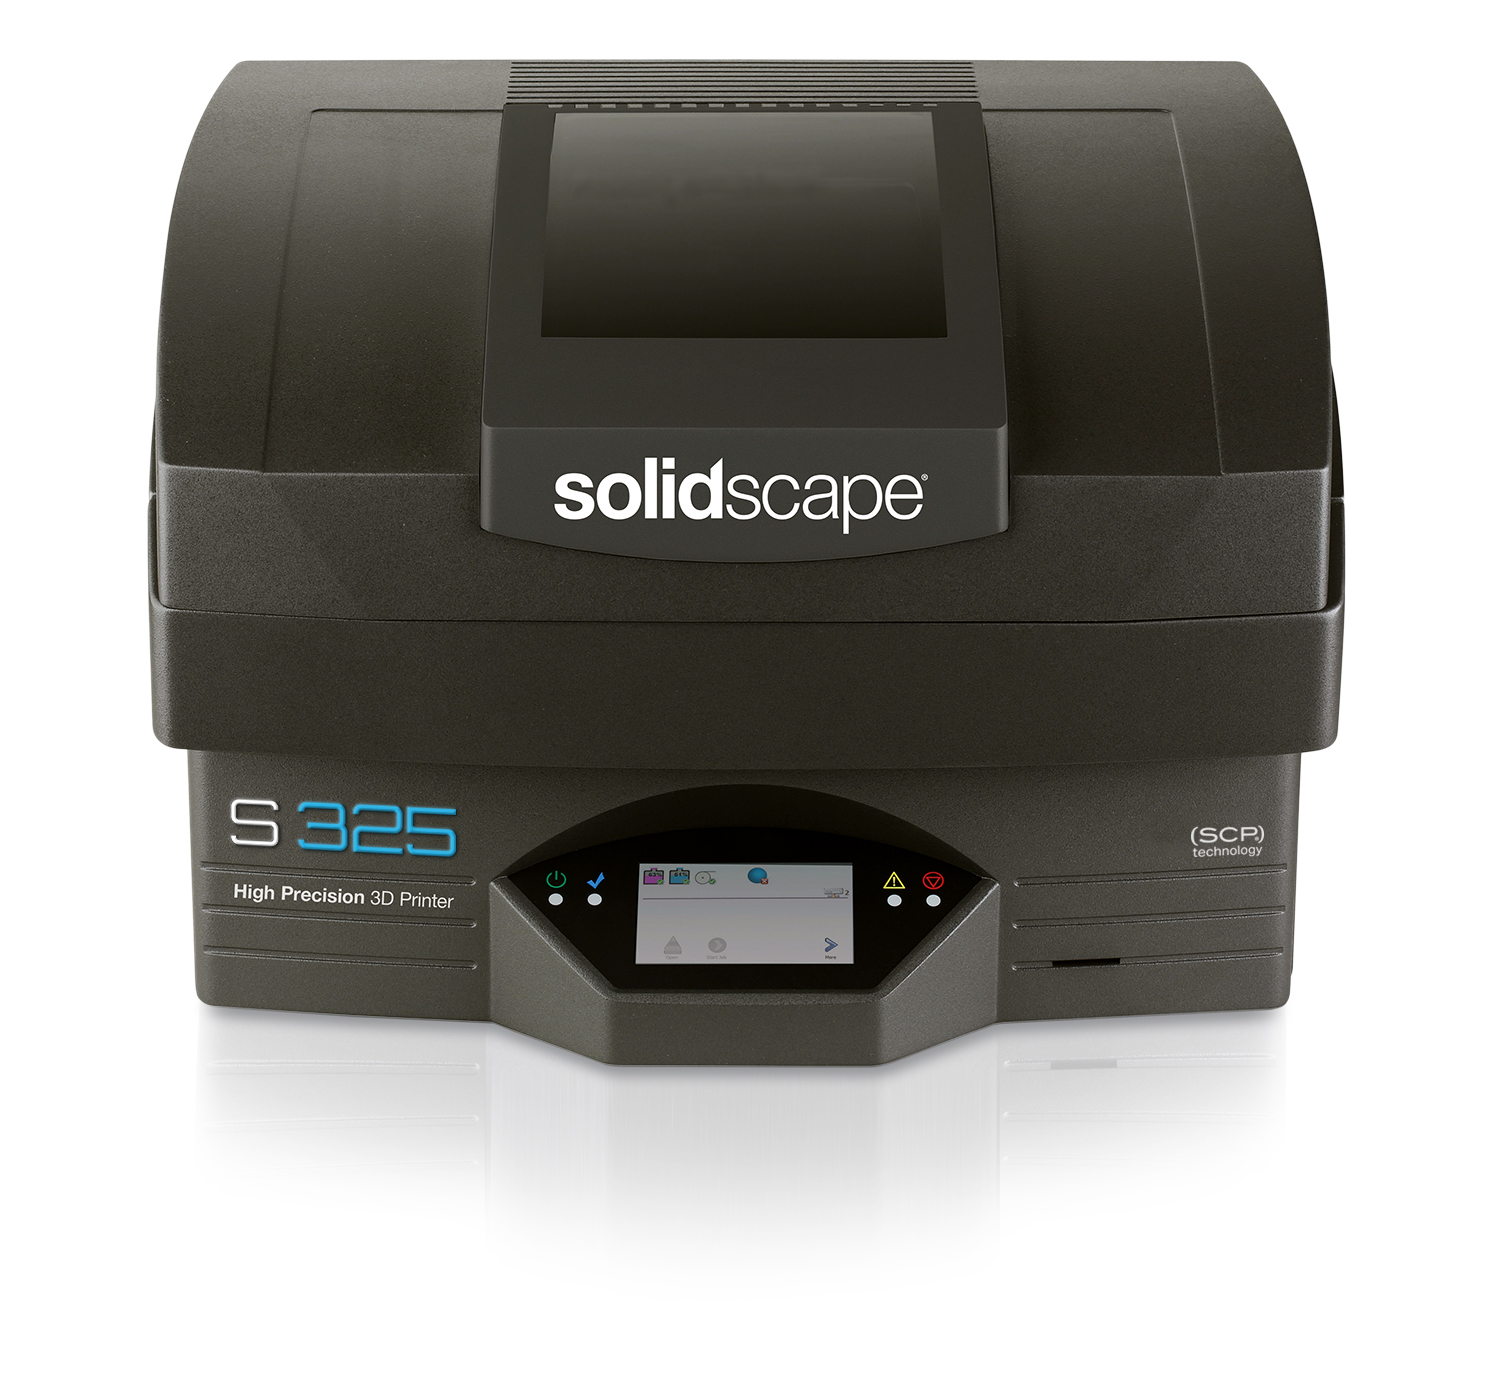 Solidscape S360 printer